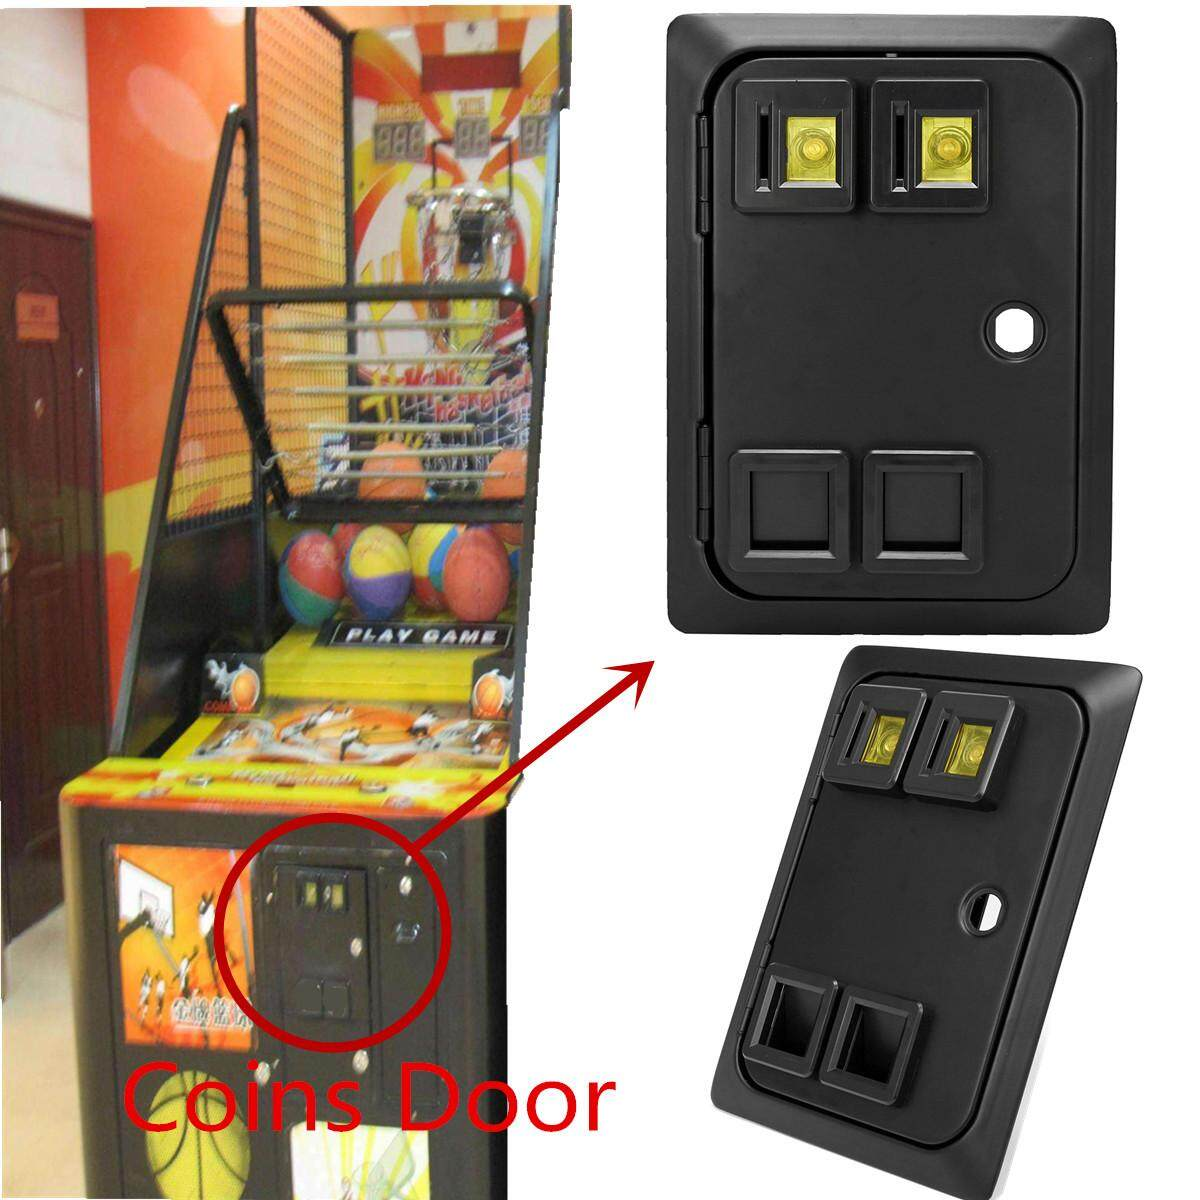 Arcade Game Coin Door with mechanical coin selector for Mame Jamma +Org Cabinets